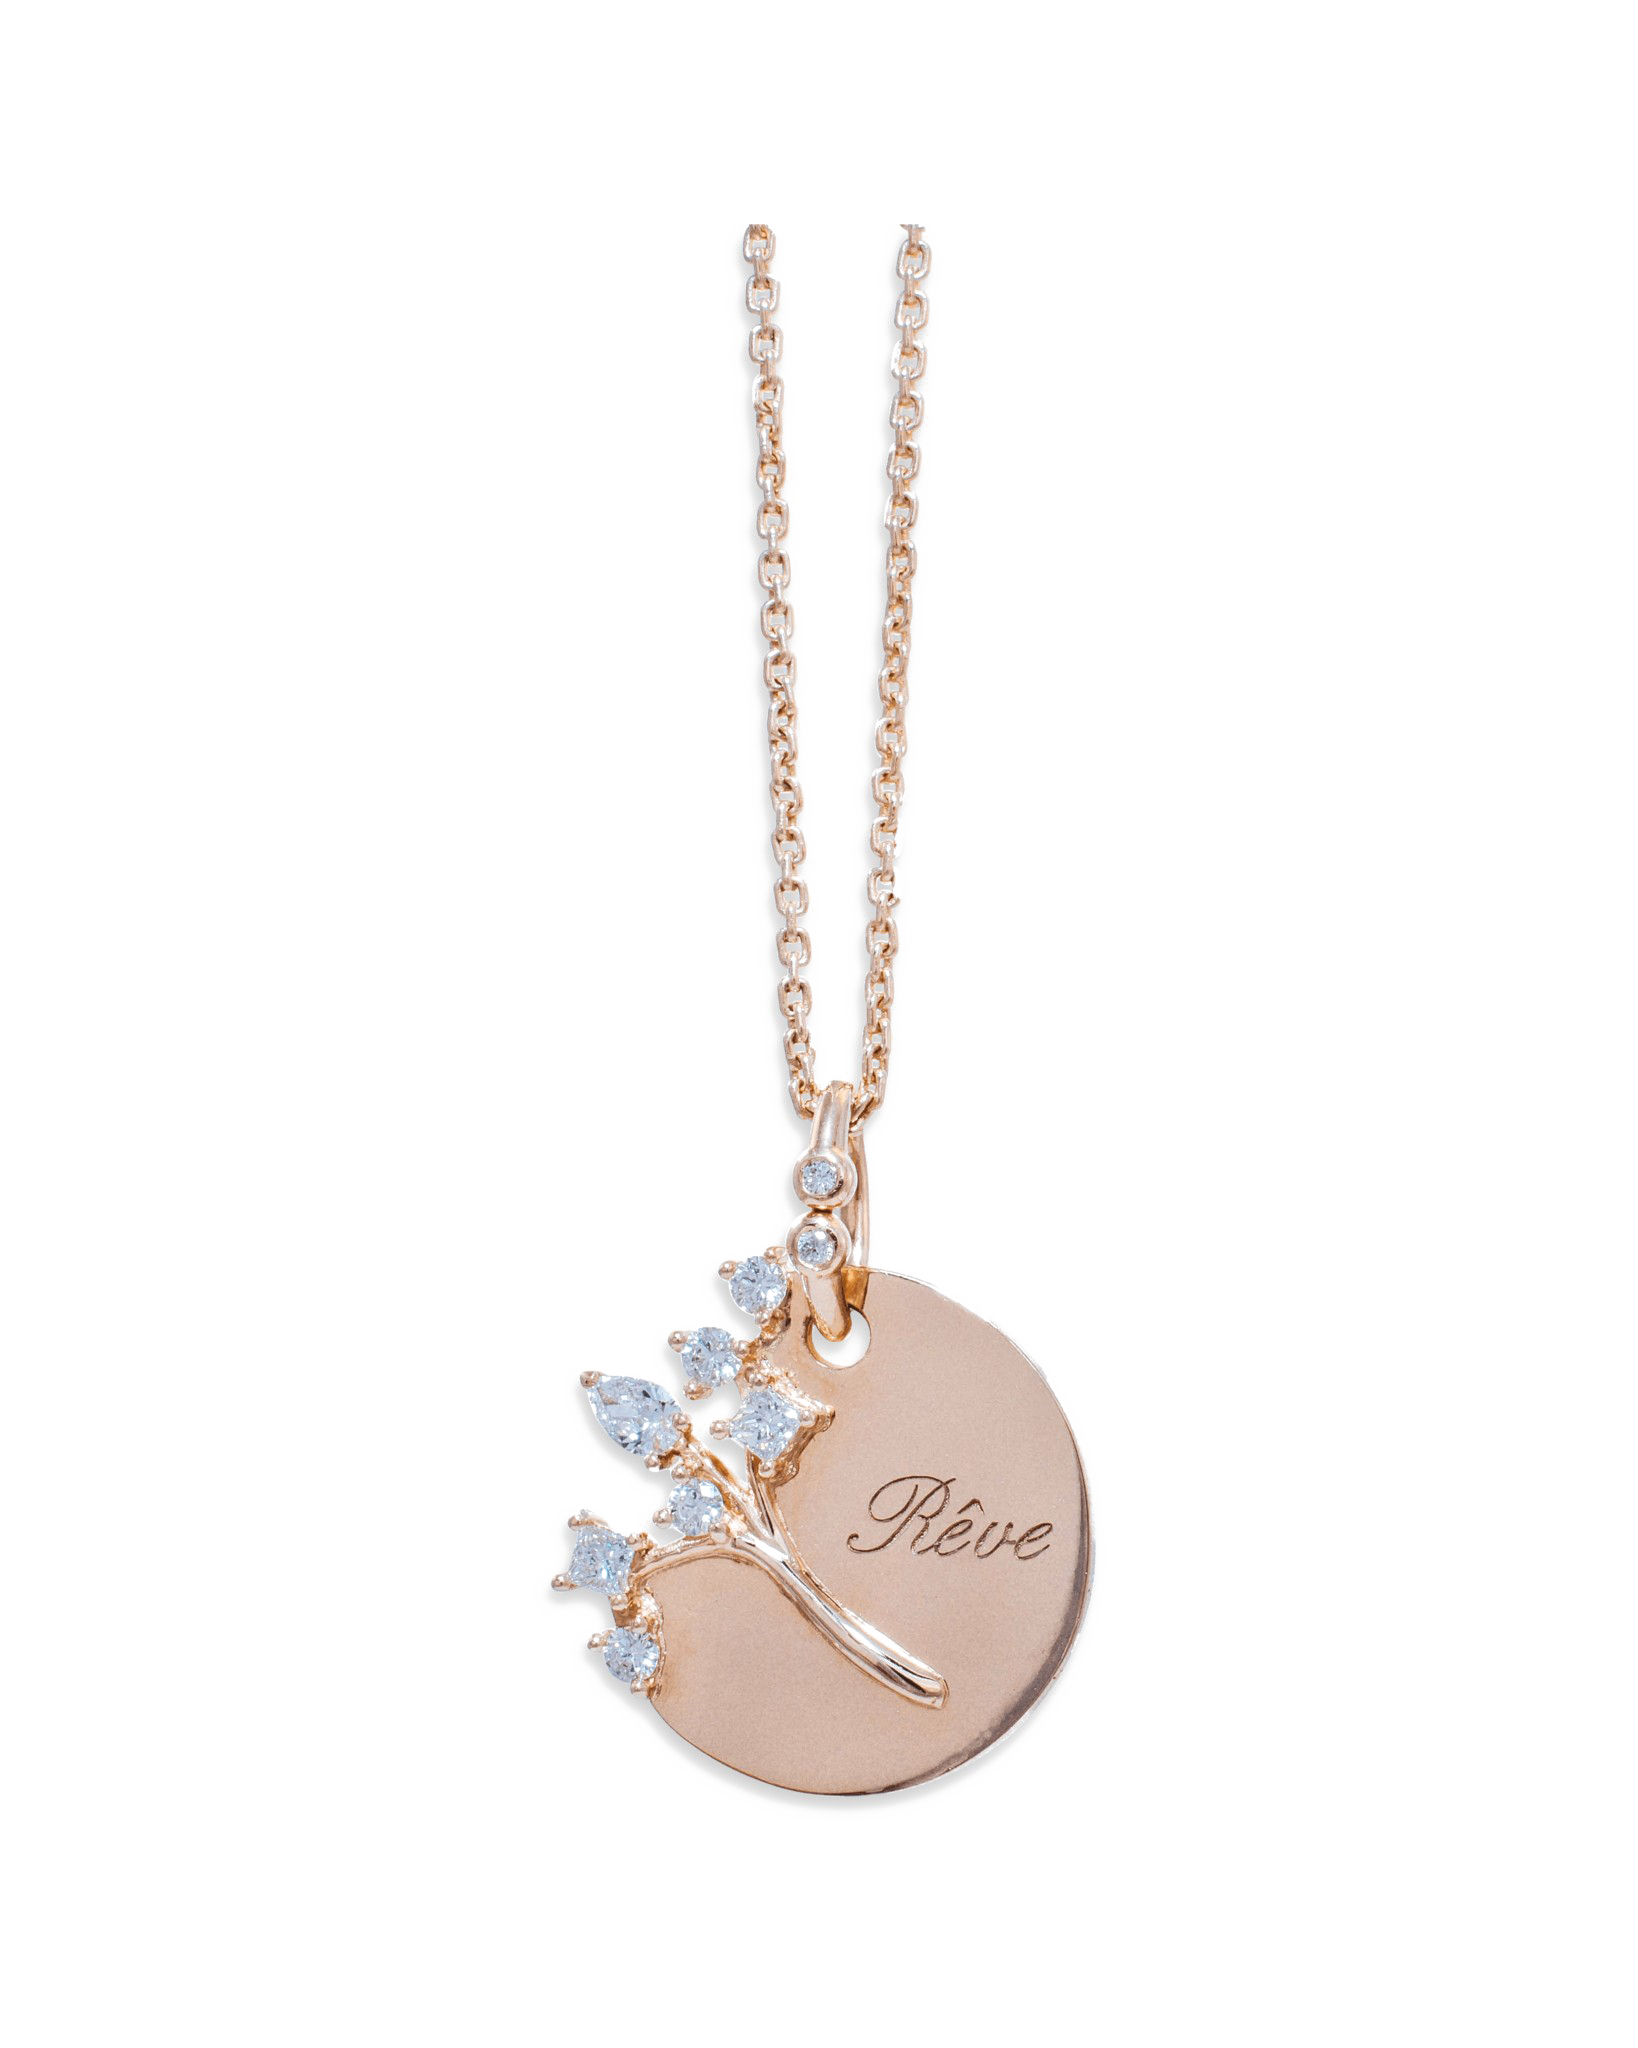 uploads necklace necklace PNG48 65